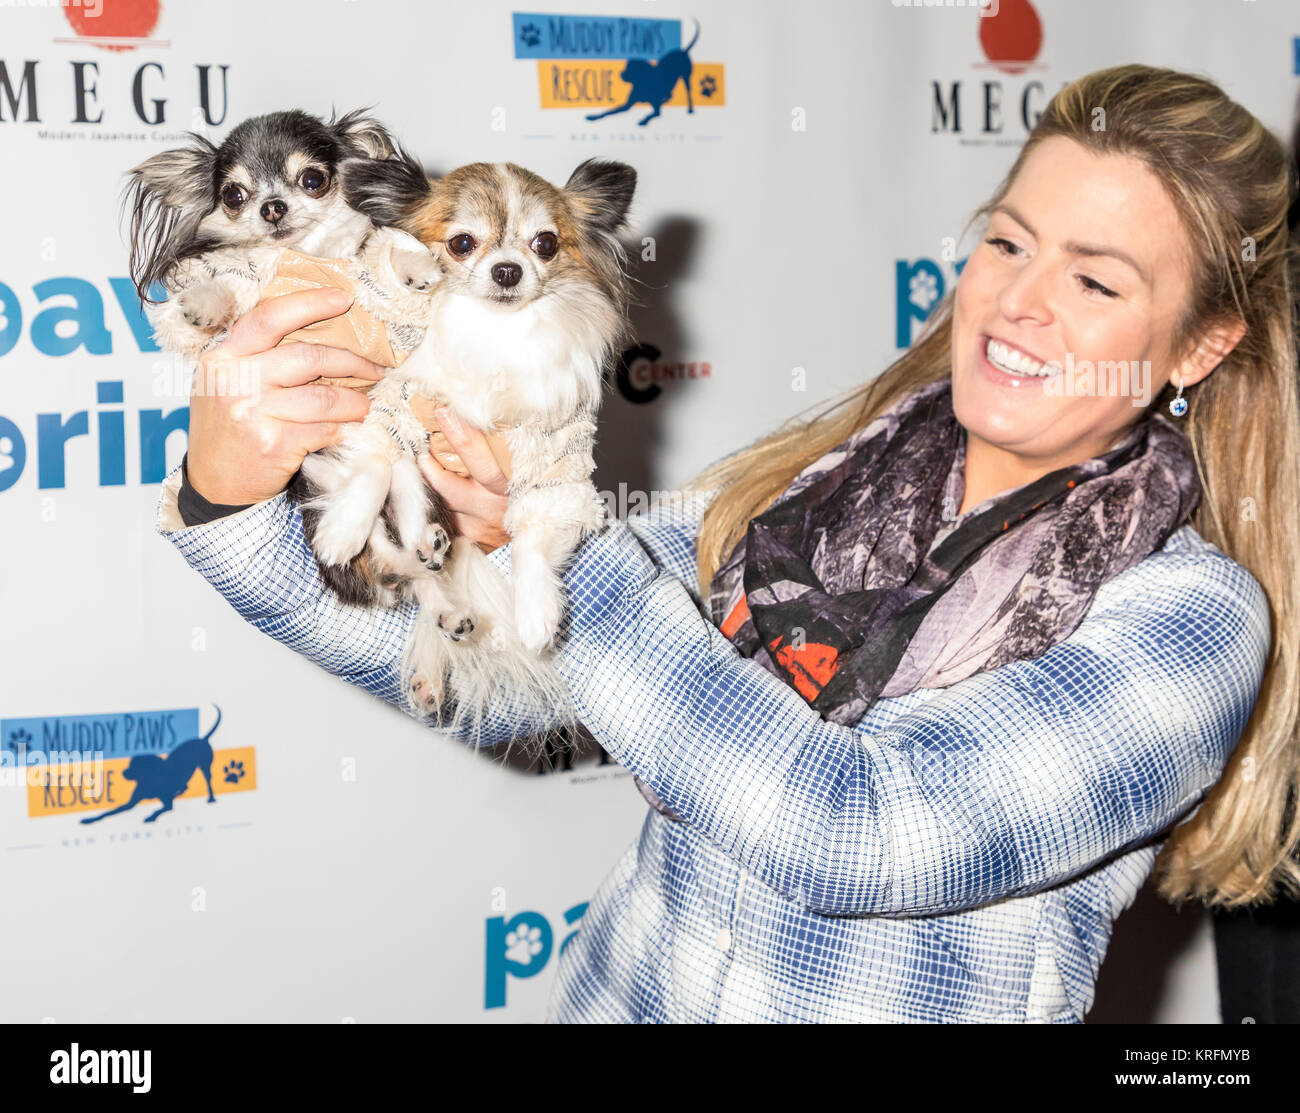 New York, NY, USA - December 19: Tansy and Corazon at the Paw Prints 1st Annual Paw-liday party screening of 'Best Stock Photo